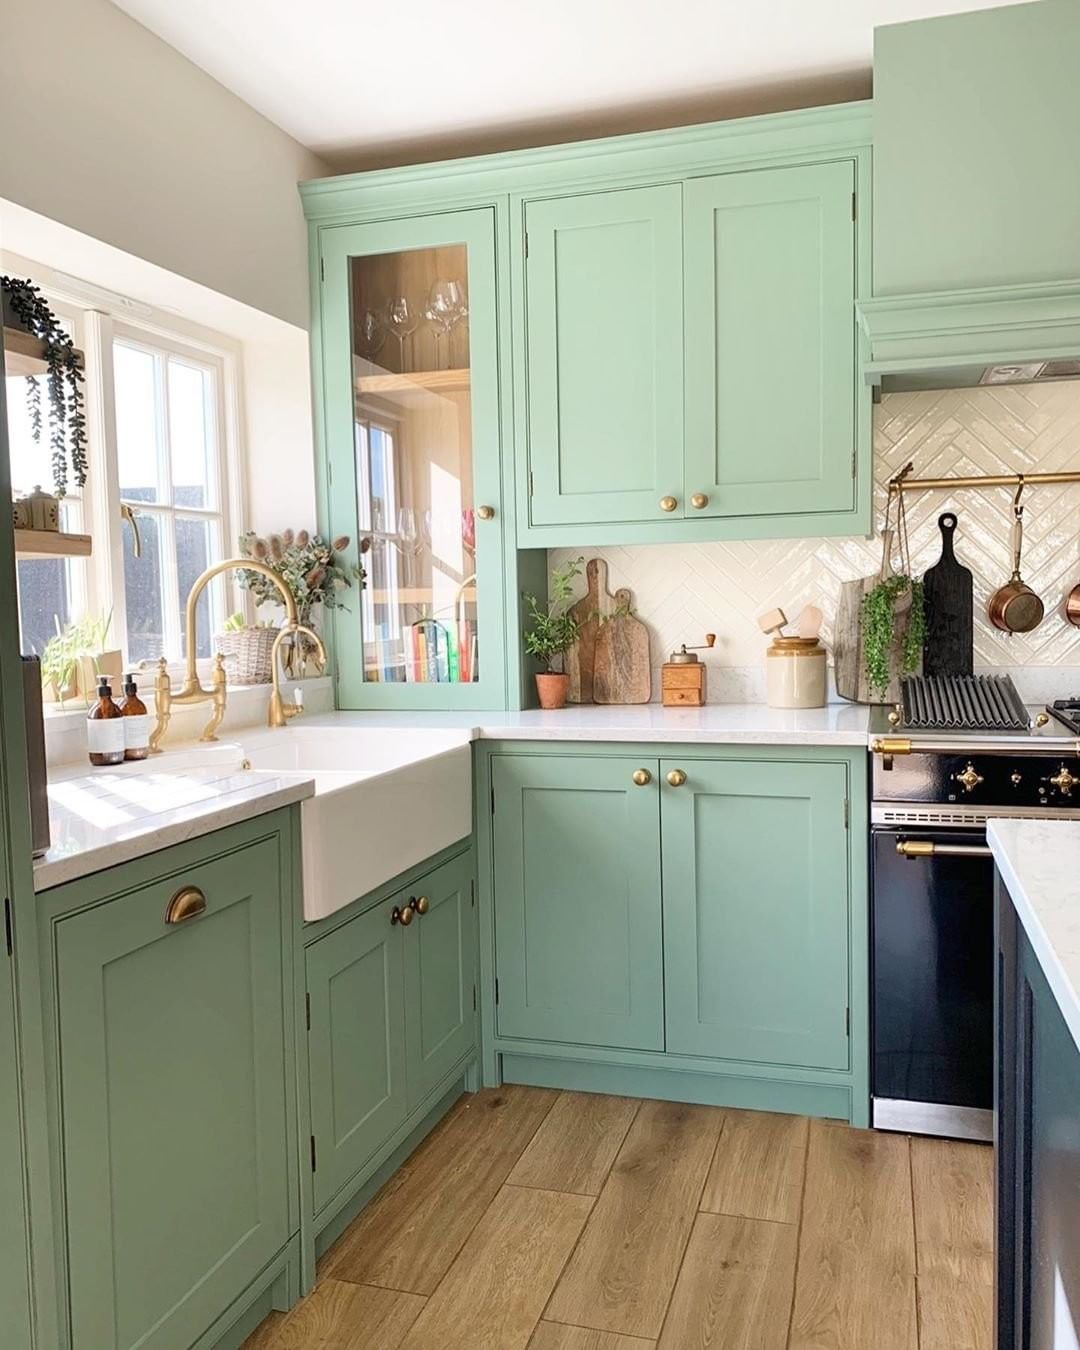 Mint Green Kitchen With Gold Hardware In 2020 Green Kitchen Designs Mint Green Kitchen Kitchen Design